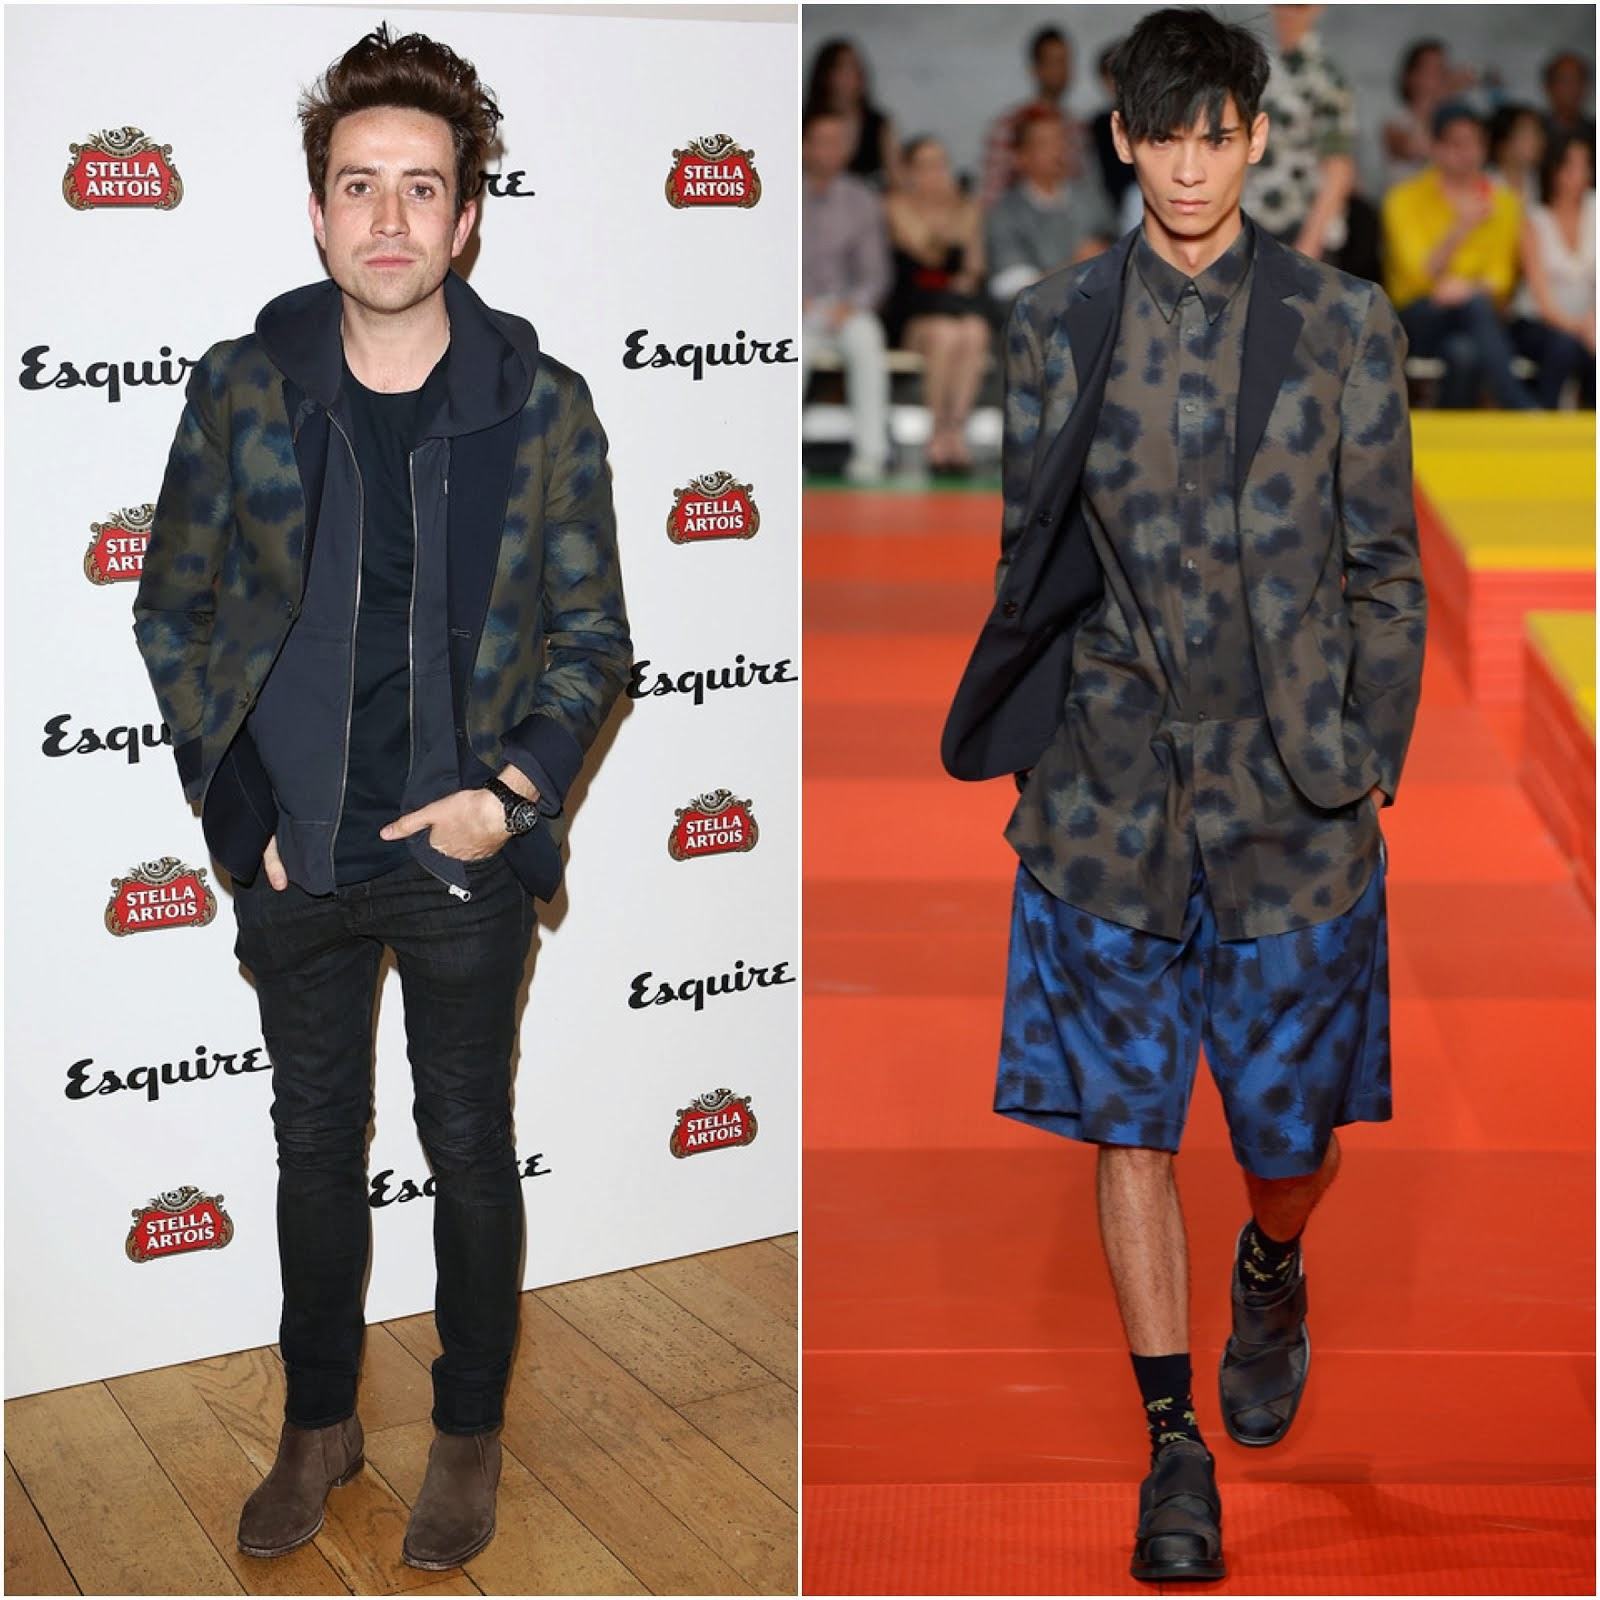 00O00 Menswear Blog: Nick Grimshaw's Kenzo camouflage blazer - Esquire Summer Party